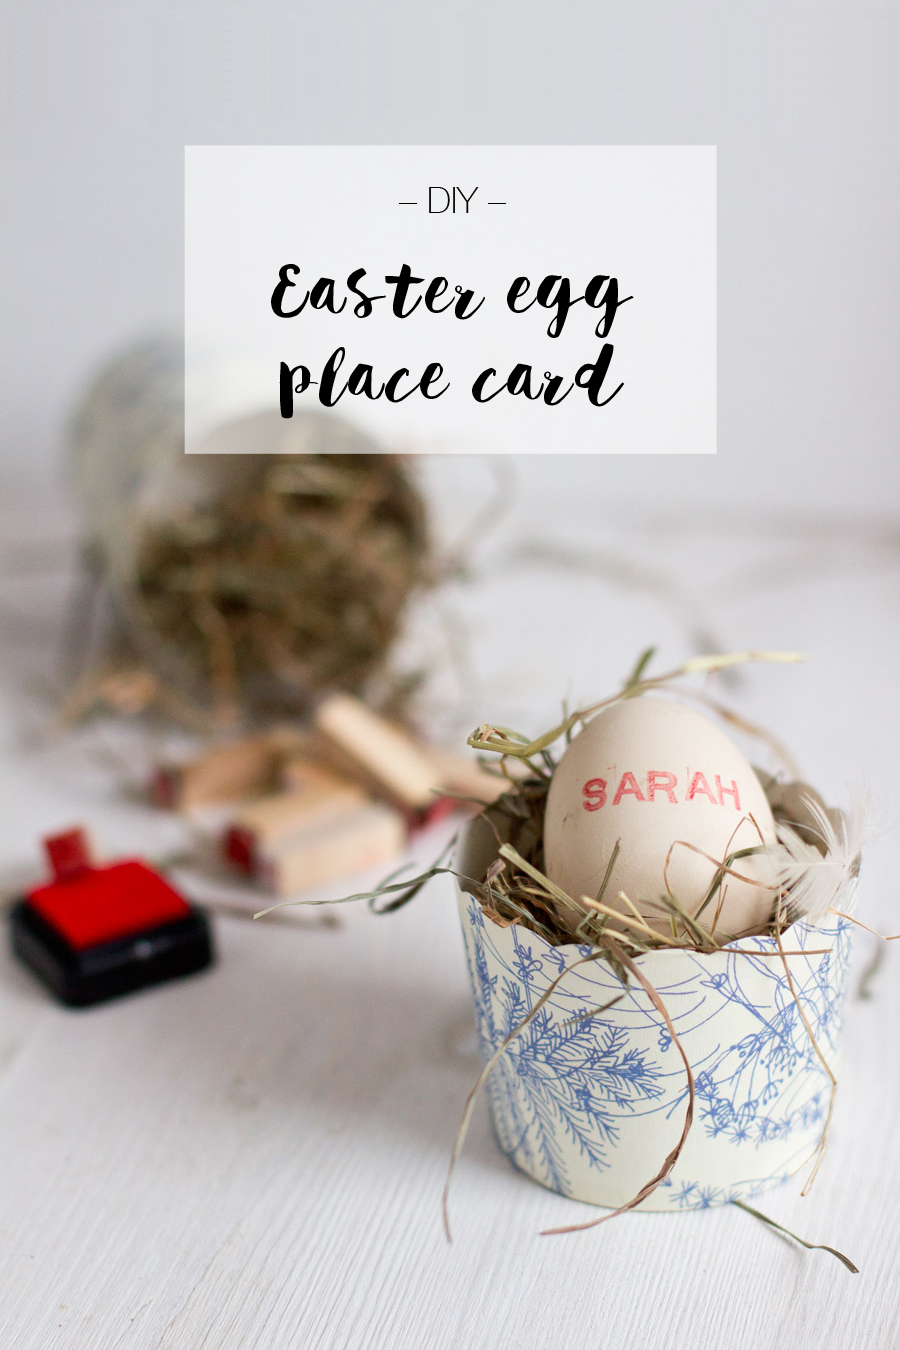 easter-egg-name-card-diy